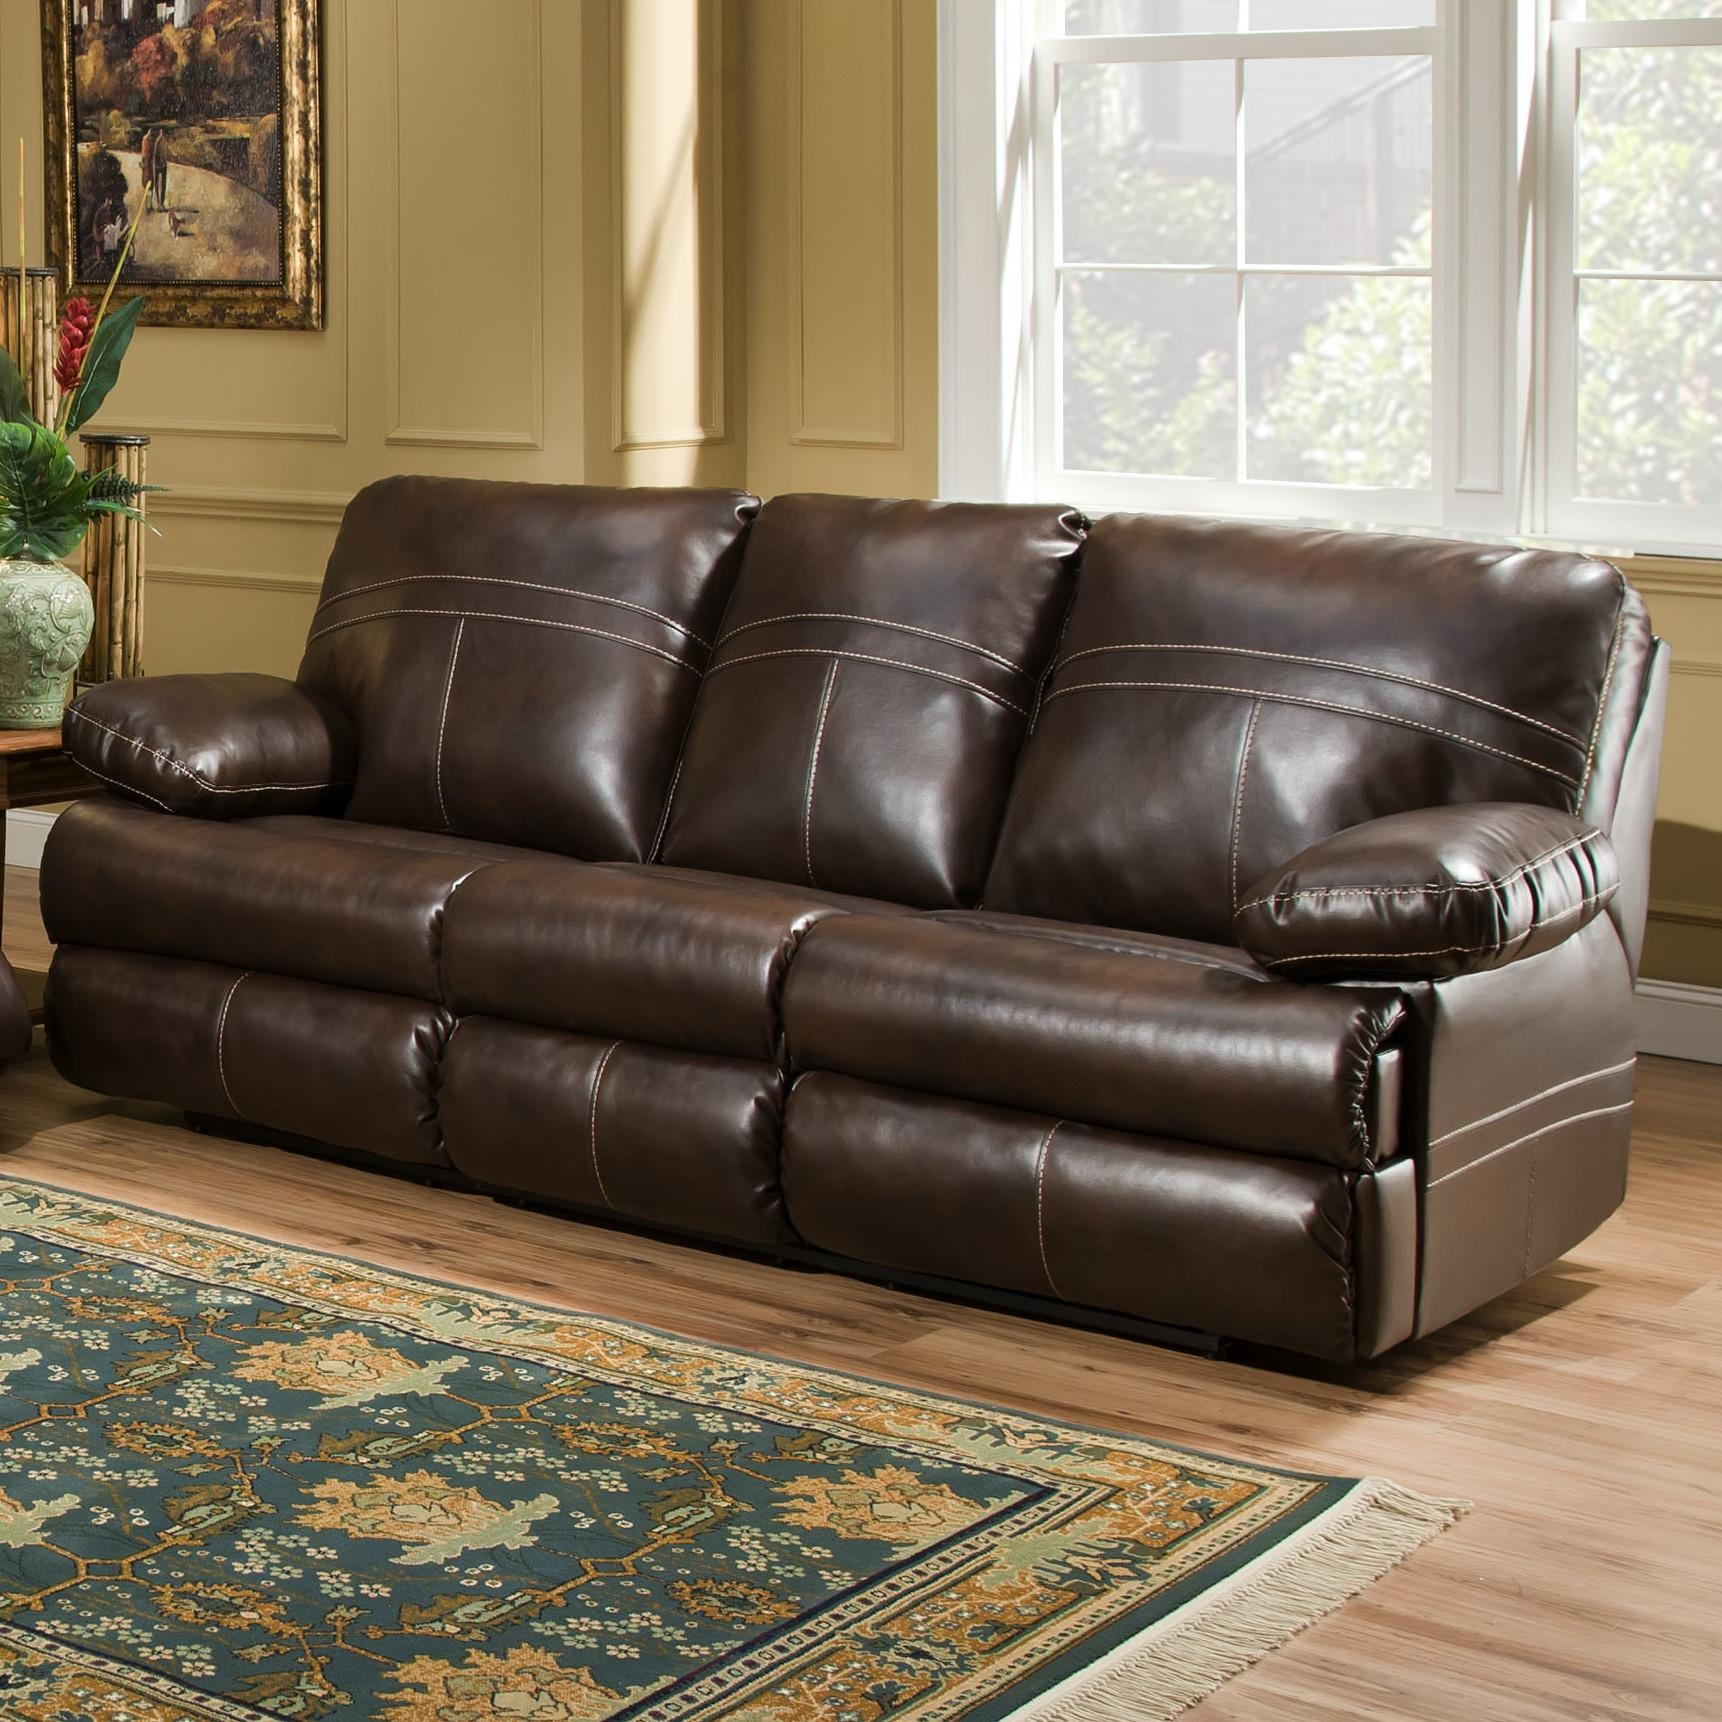 Furniture & Rug: Fancy Sectional Sleeper Sofa For Best Home Pertaining To King Size Sleeper Sofa Sectional (View 4 of 20)